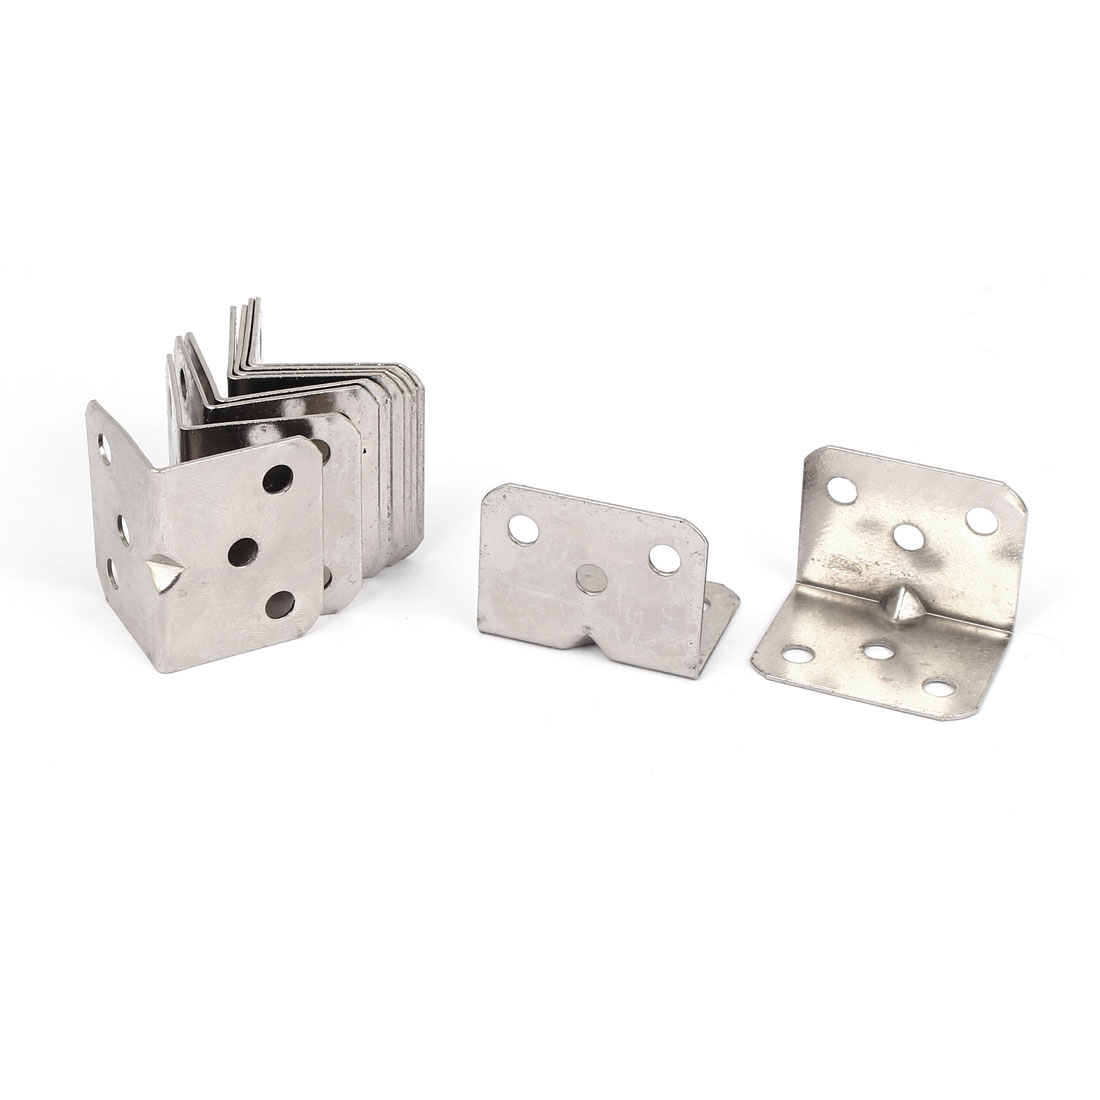 10pcs 27x27x36mm Stainless Steel Corner Brace Right Angle Bracket 1mm Thickness